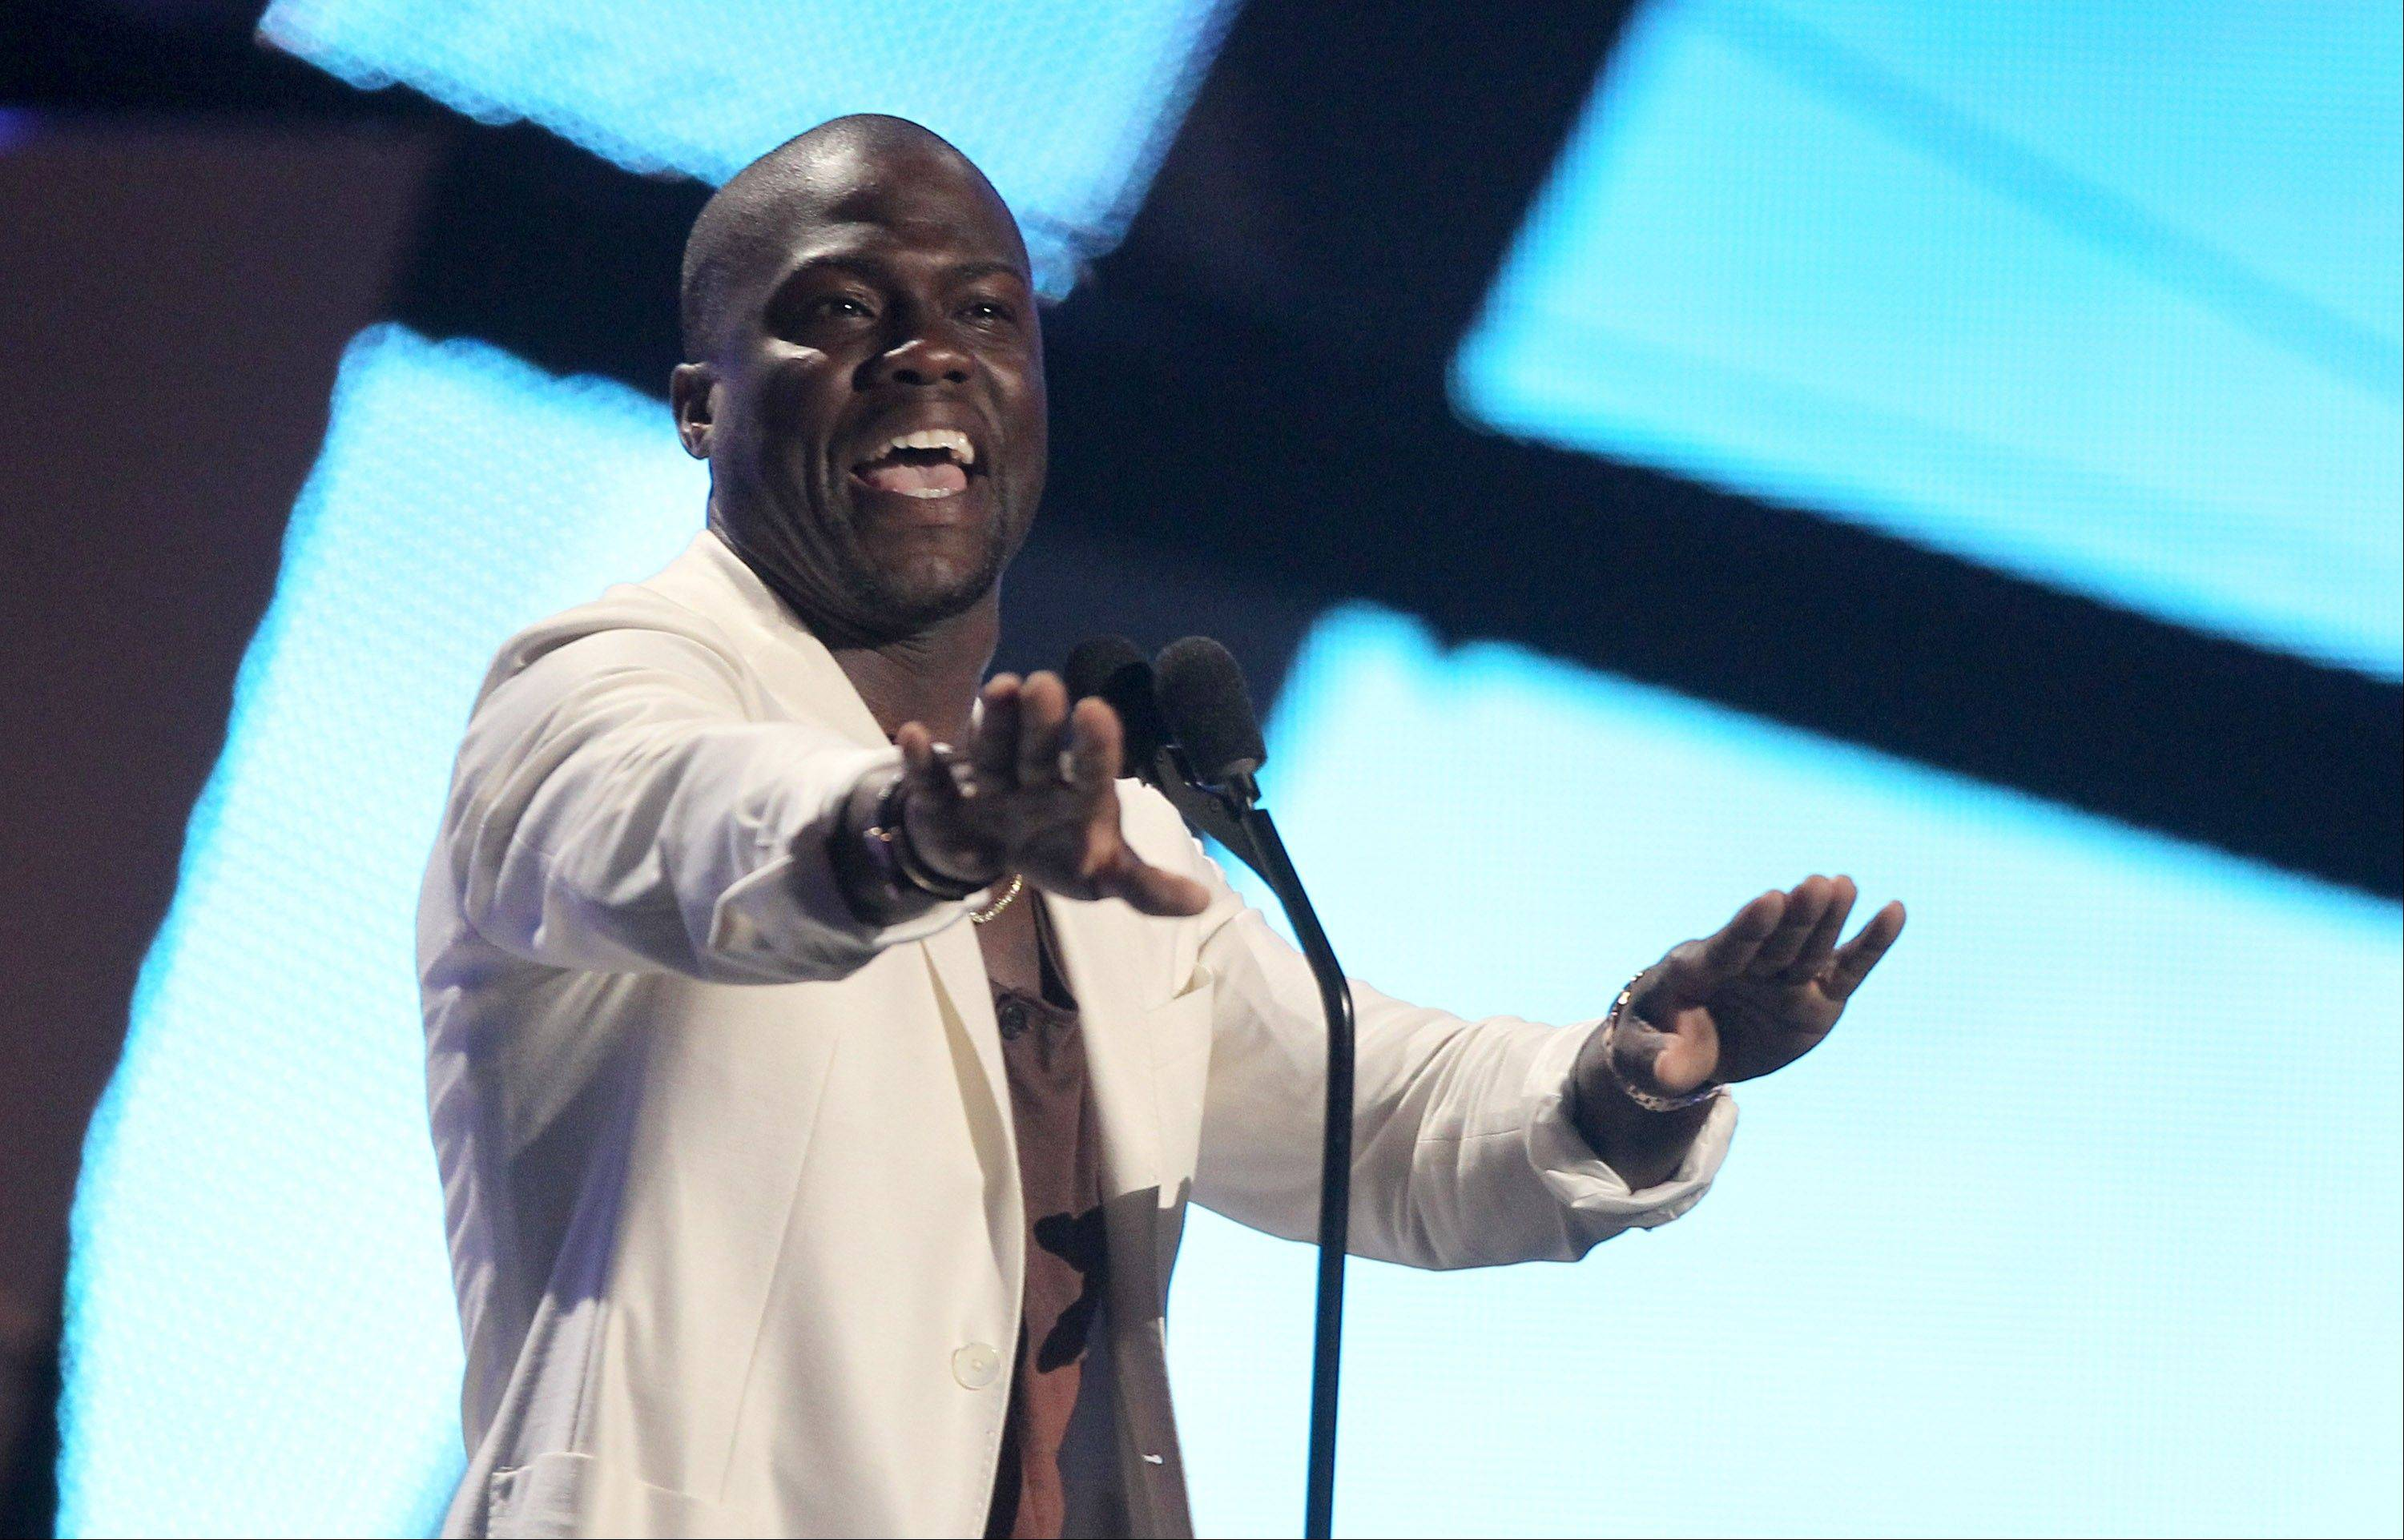 Kevin Hart introduces a performance at the BET Awards on Sunday in Los Angeles.